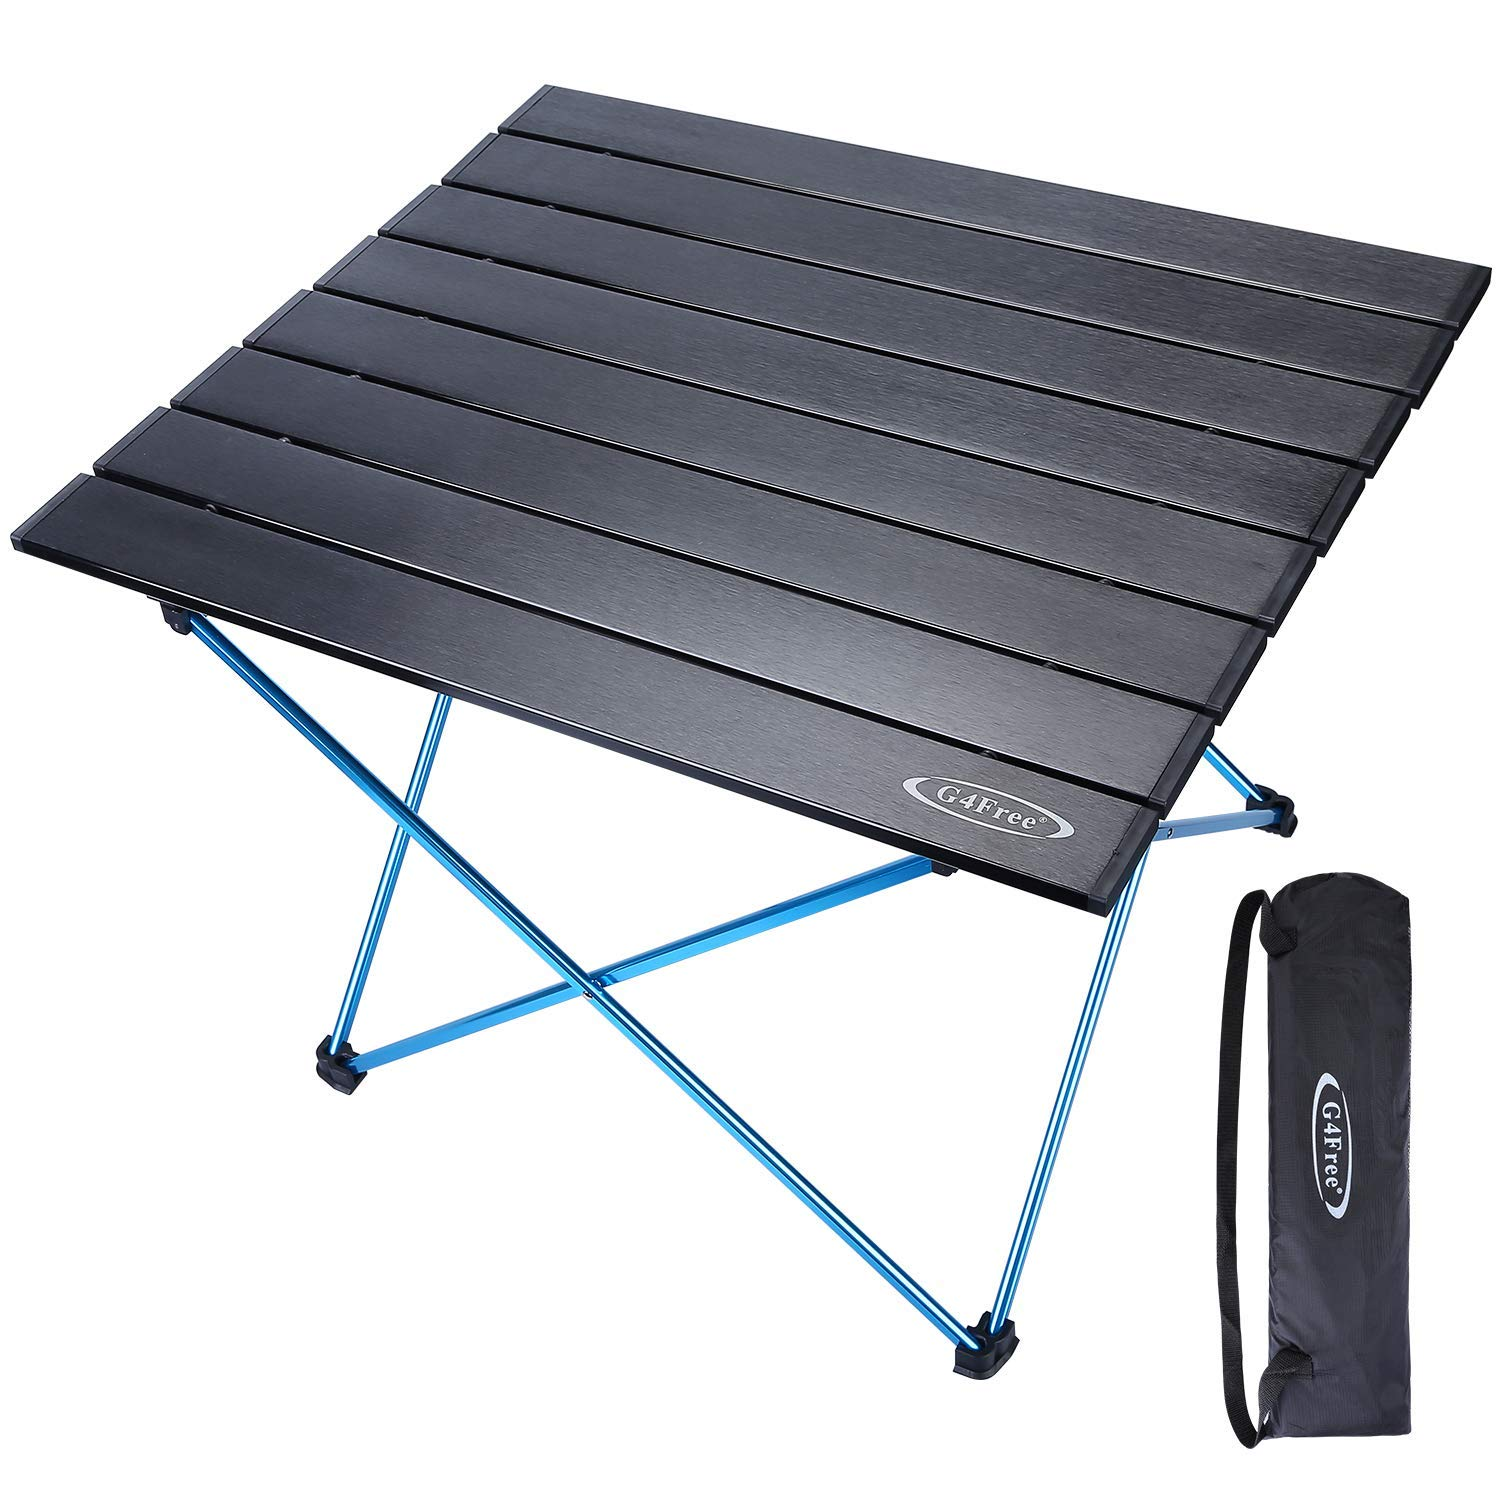 Stupendous G4Free Portable Folding Camping Table Aluminum Lightweight Camp Table Compact Roll Up Tables With Carrying Bag For Outdoor Camping Hiking Picnic Pdpeps Interior Chair Design Pdpepsorg